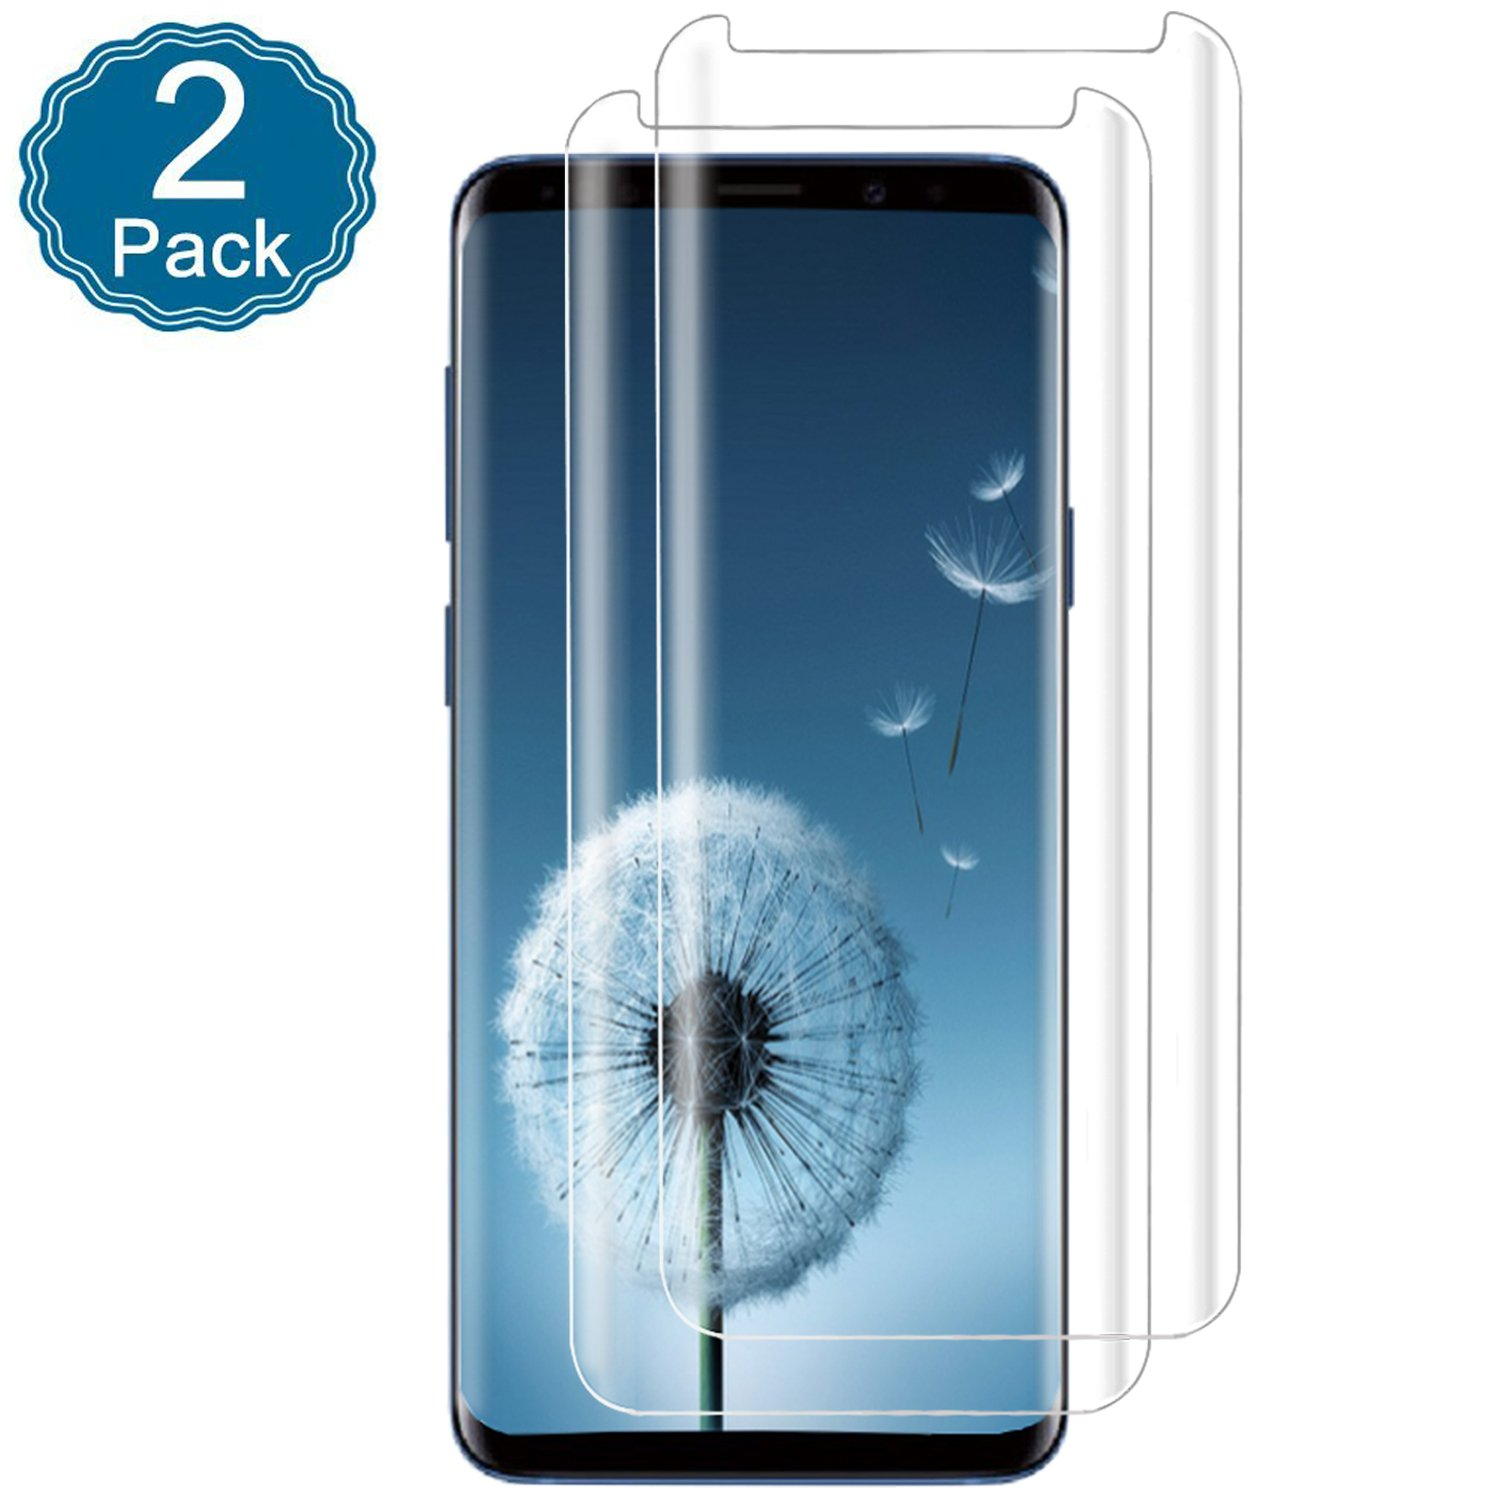 Galaxy S9 Screen Protector, 3D Full Screen Coverage Glass [Easy to Install][9H Hardness][HD-Clear][Case Friendly][Anti-Fingerprint] Tempered Glass Screen Protector for Samsung Galaxy S9 [2 Pack]